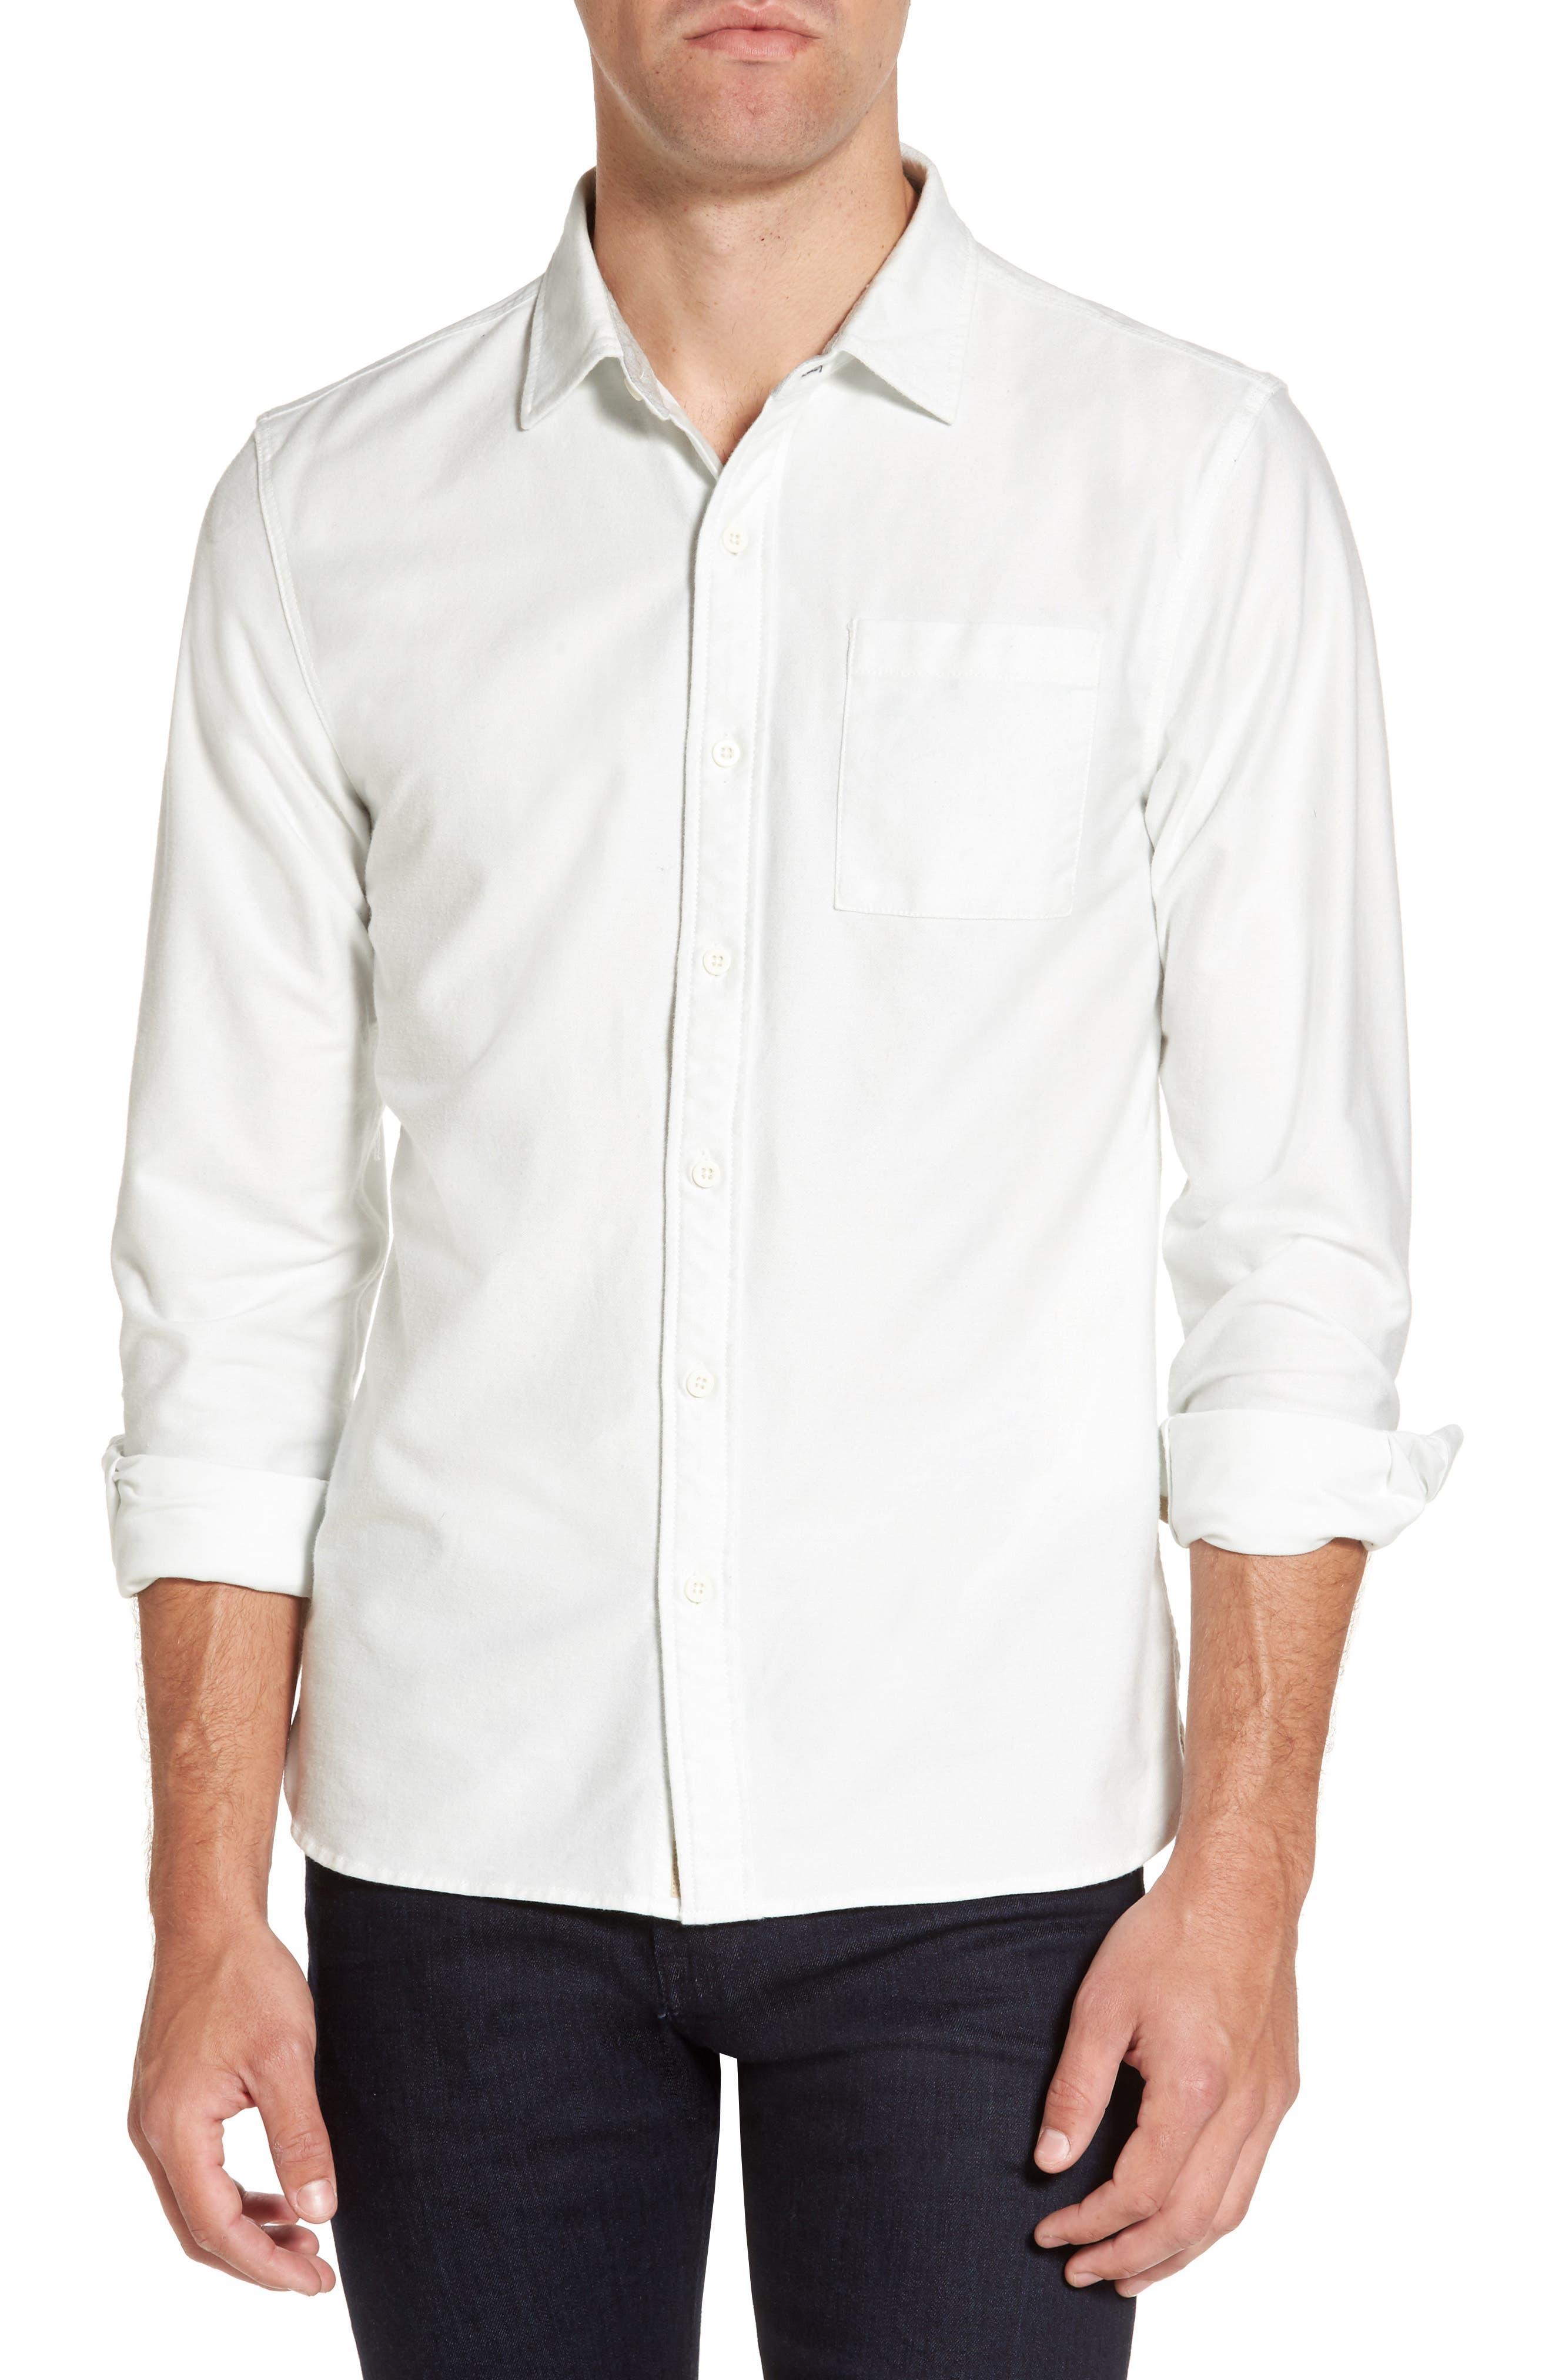 NIFTY GENIUS Truman Solid Sport Shirt